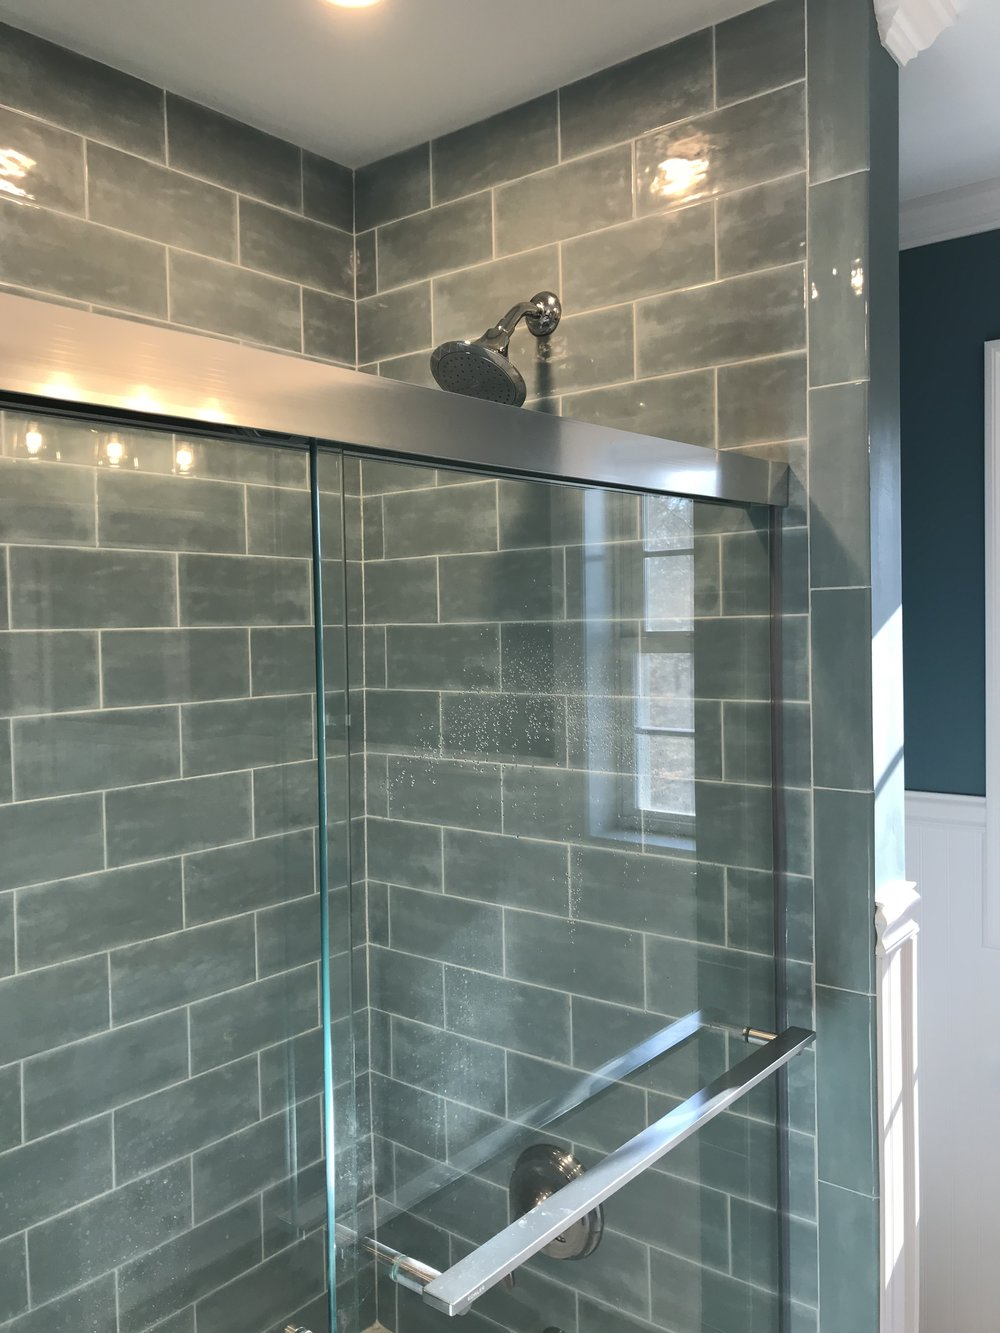 Shaw Remodeling - Bathroom Renovation Project in East Lyme CT